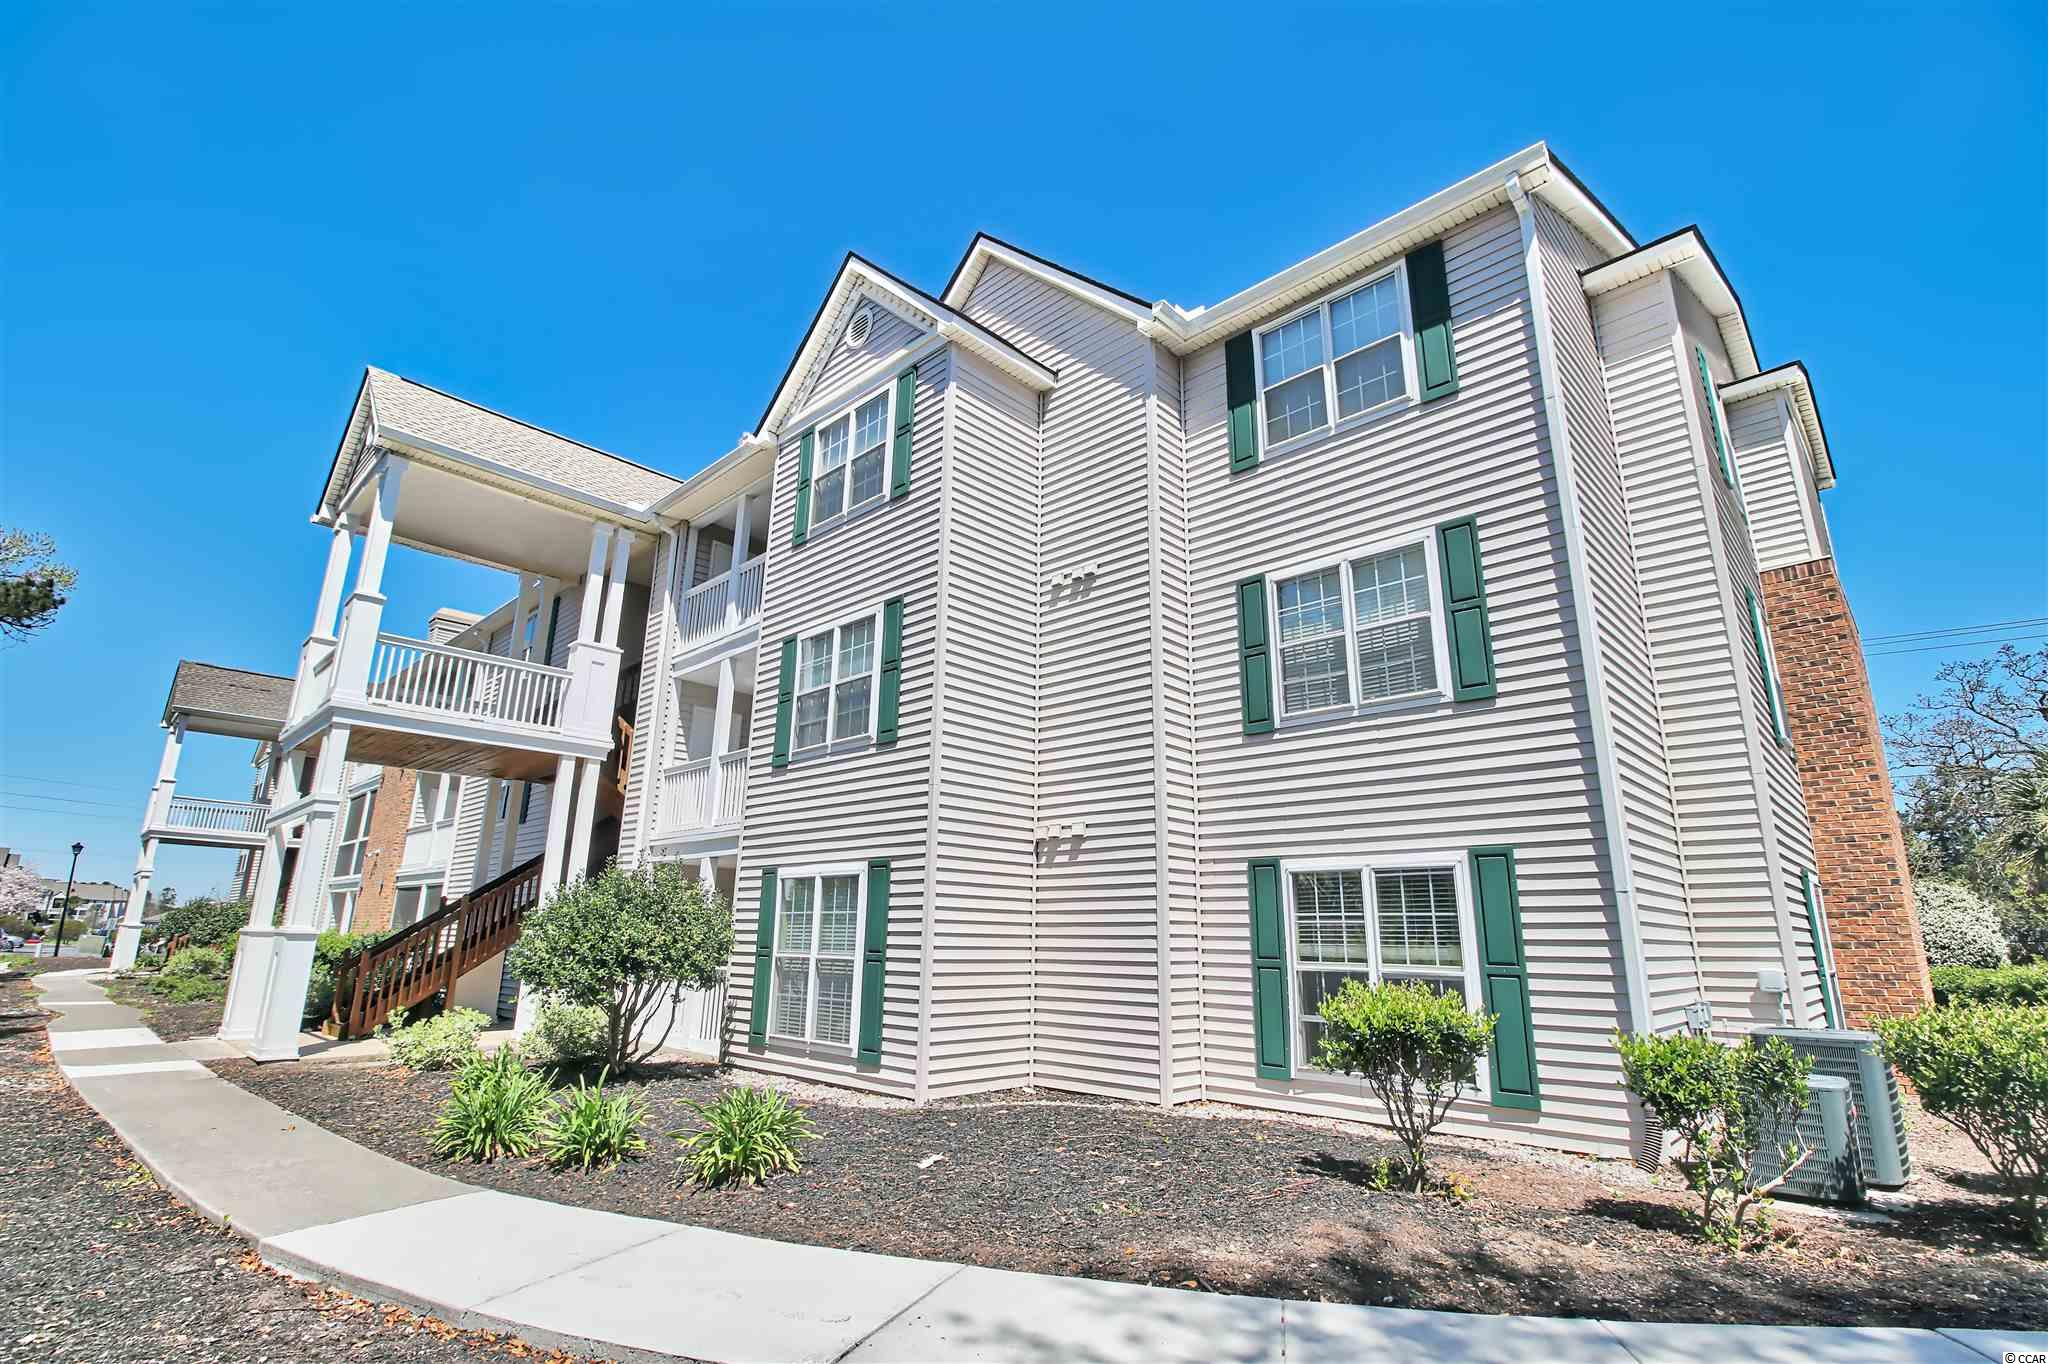 You will not want to miss this well maintained 3br/2b unit that just became available.  Location is everything and this unit happens to be in a centrally located, golf cart or walk to the beach, condo community, Broadway Station.  This 2nd floor unit, has a living room/dining room combo, both with crown molding. The dining room has armchair railing.  Ceiling fan in living room and sliders from the living room that access the screened in balcony with its own storage closet.  The galley style kitchen has all the modern conveniences:  smooth top range, with over range microwave, dishwasher, double sink with garbage disposal, refrigerator, and country pantry cabinet.  Laundry room is deep with washer and dryer and shelving.  Master bedroom has ceiling fan and access to the screen balcony, and walk in closet.  The master bath has a garden tub/shower combo.  The two guest bedrooms are large, one having a walk in closet and the other having two closets.  Hall bath has a shower/tub combo.  Broadway Station is a gated community, with a resort style pool with lake views, hot tub, club house, fitness center, a car wash, and gas grilling stations throughout.  Broadway Station is located less than a mile to beach, and convenient to dining, shopping, groceries, medical facilities, golf, and entertainment, including the nearby Broadway Station, Myrtlewood golf courses, and TopGolf.  This is a must see!